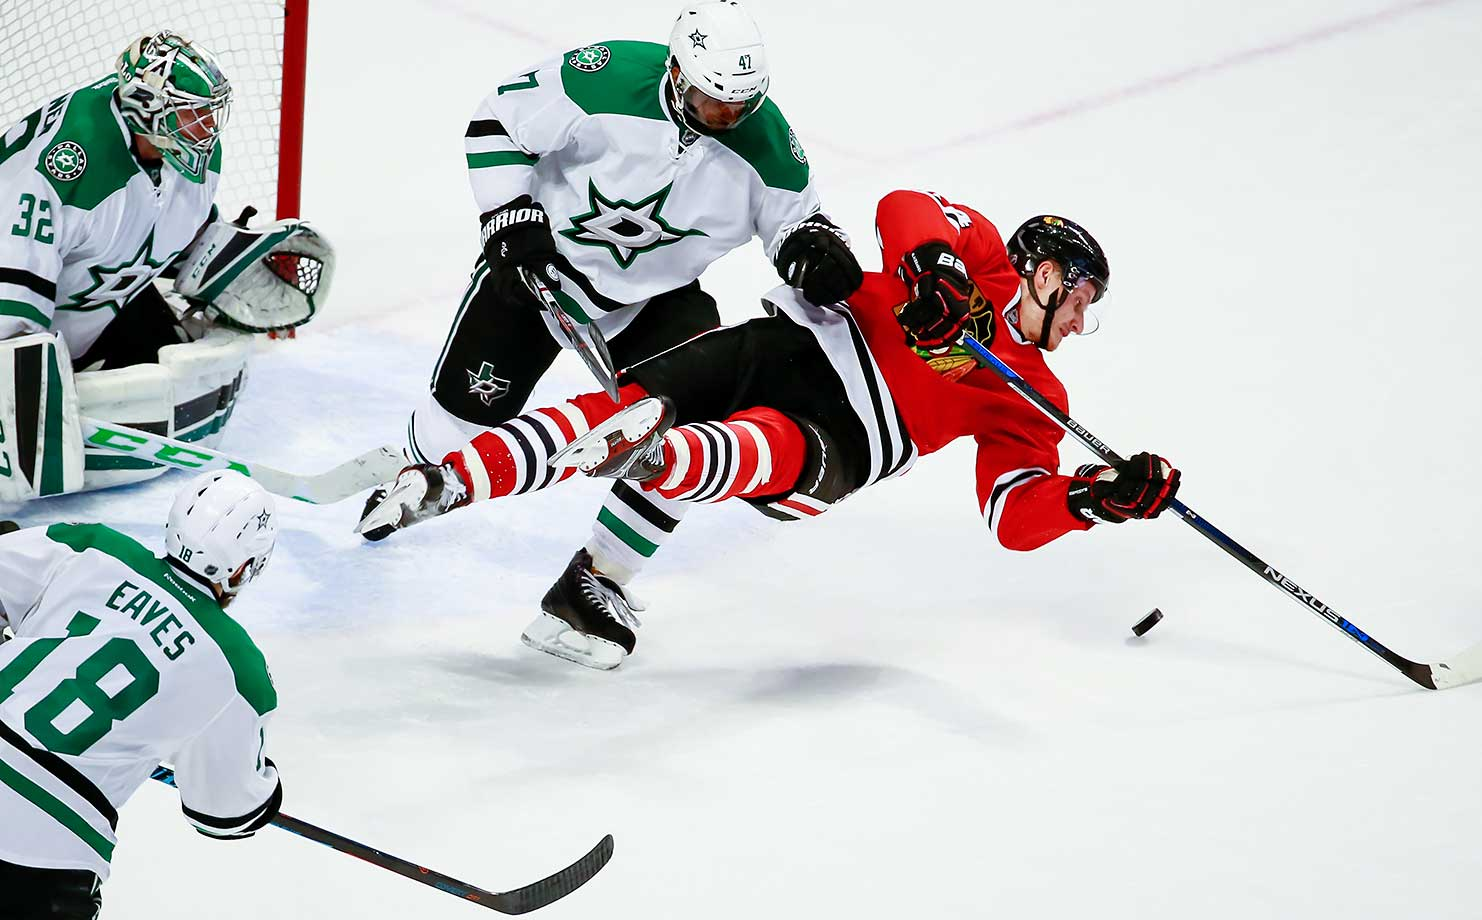 Johnny Oduya of the Dallas Stars hits Jiri Sekac of the Chicago Blackhawks.